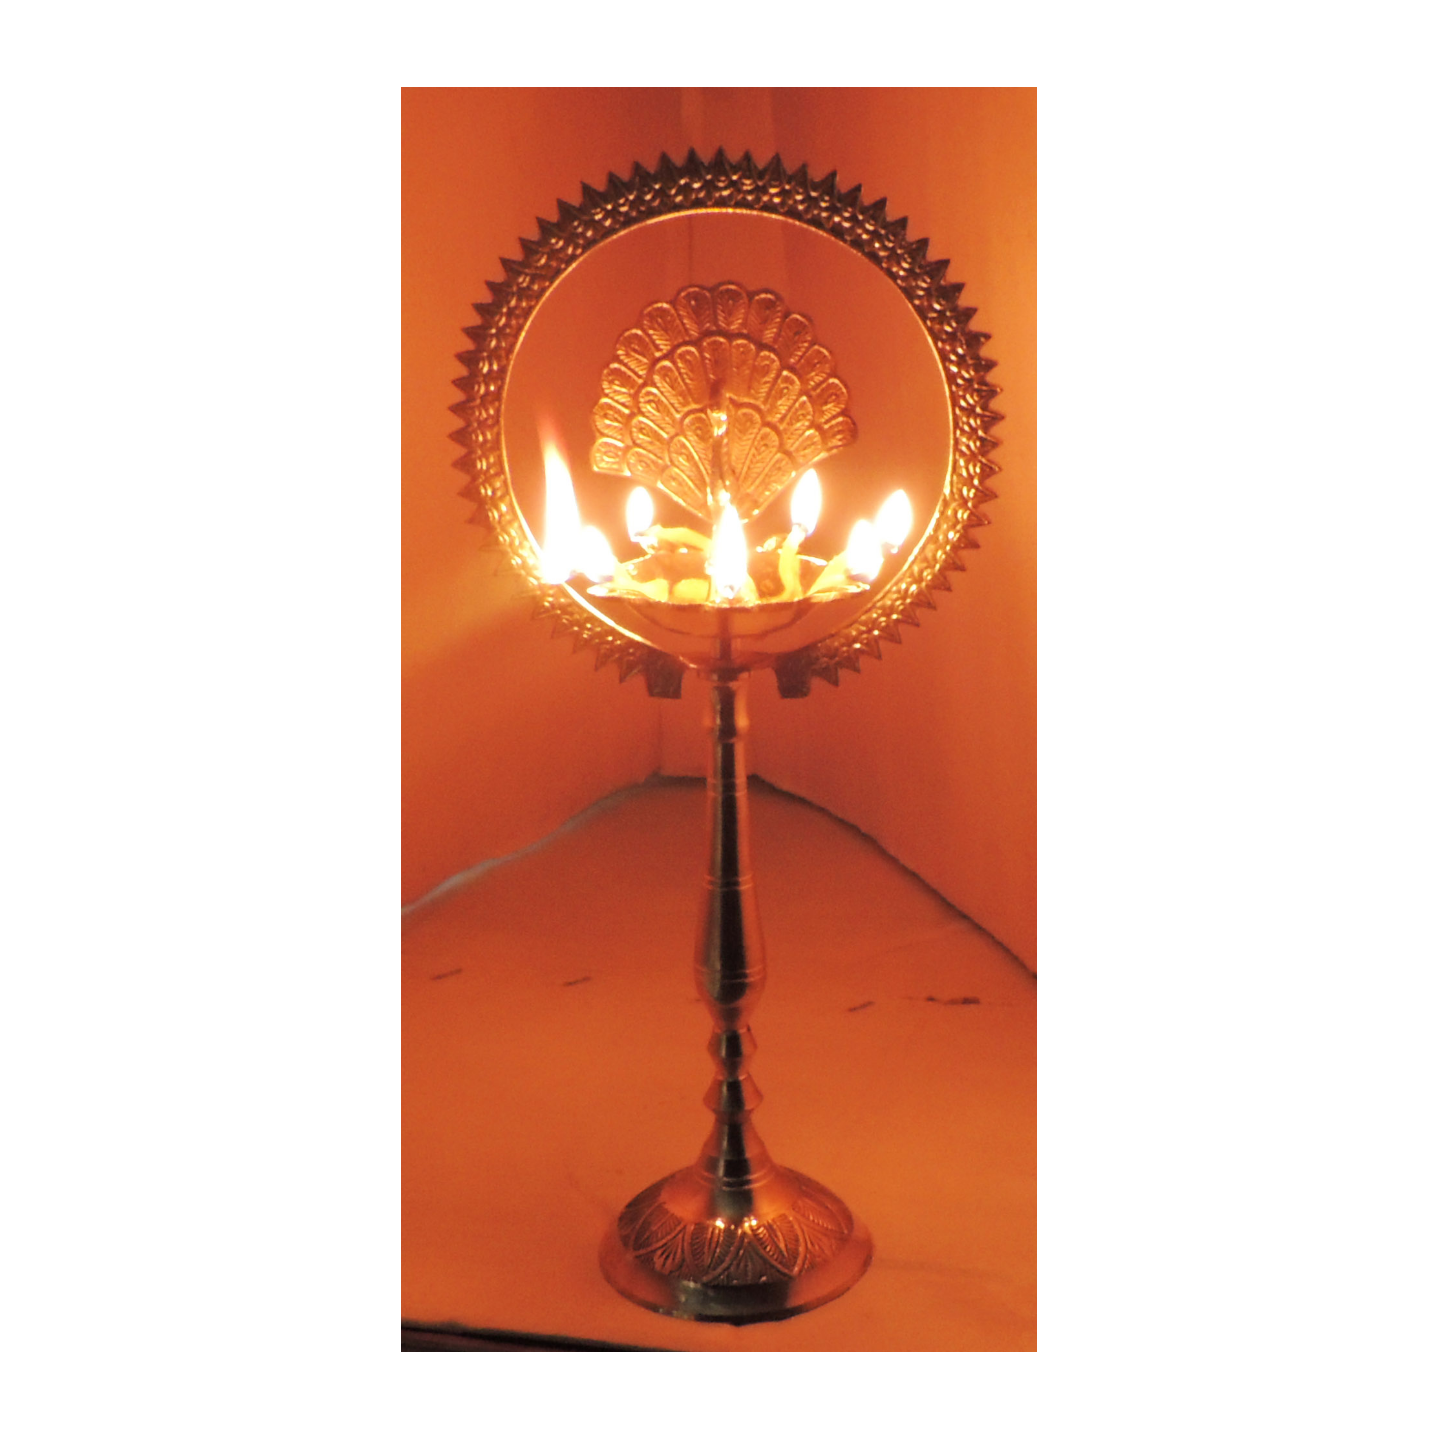 Brass Table Decor Oil Lamp Deepak With Brass Finish - Height 12 Inch (F656 F)